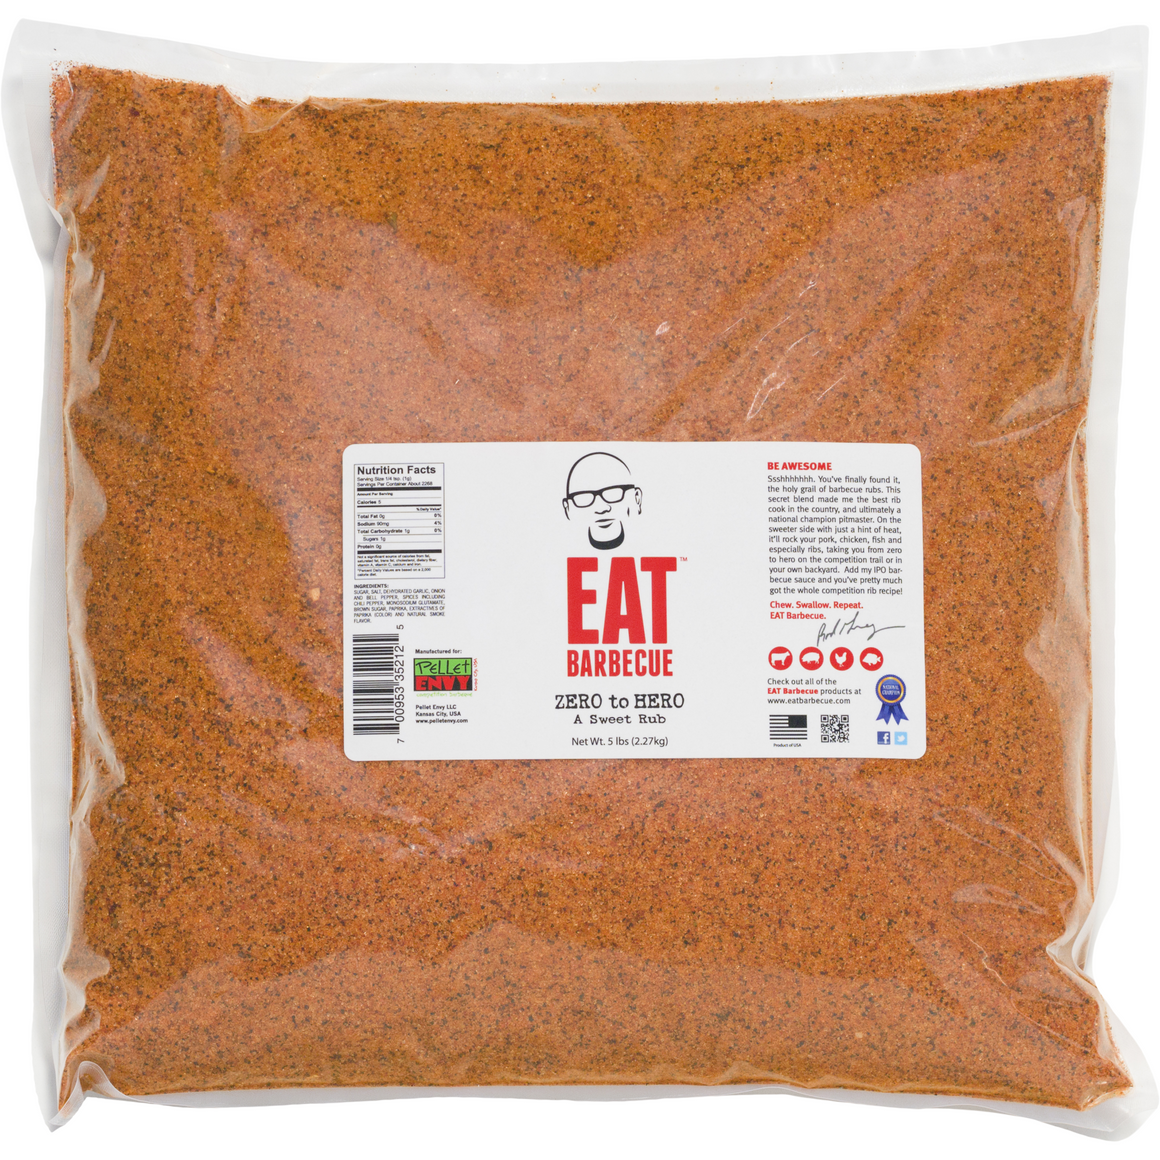 EAT Barbecue Zero to Hero Sweet Rub 5 lbs.